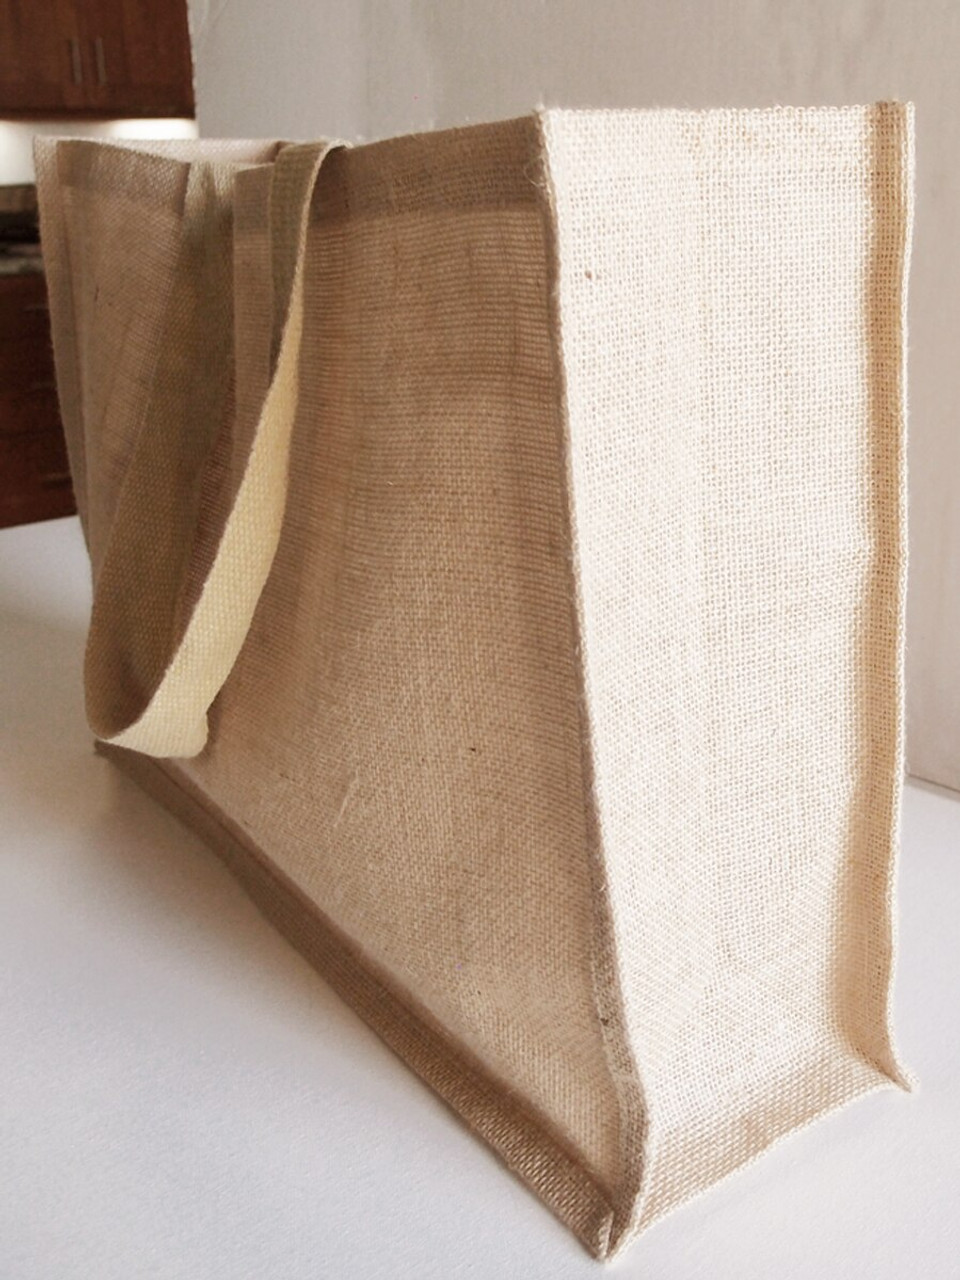 Large Burlap Tote Bags Wholesale, Jute Tote Bags, Jute Tote with Strap Handles 20 x 13.5 x 6 inches  (B879-21)